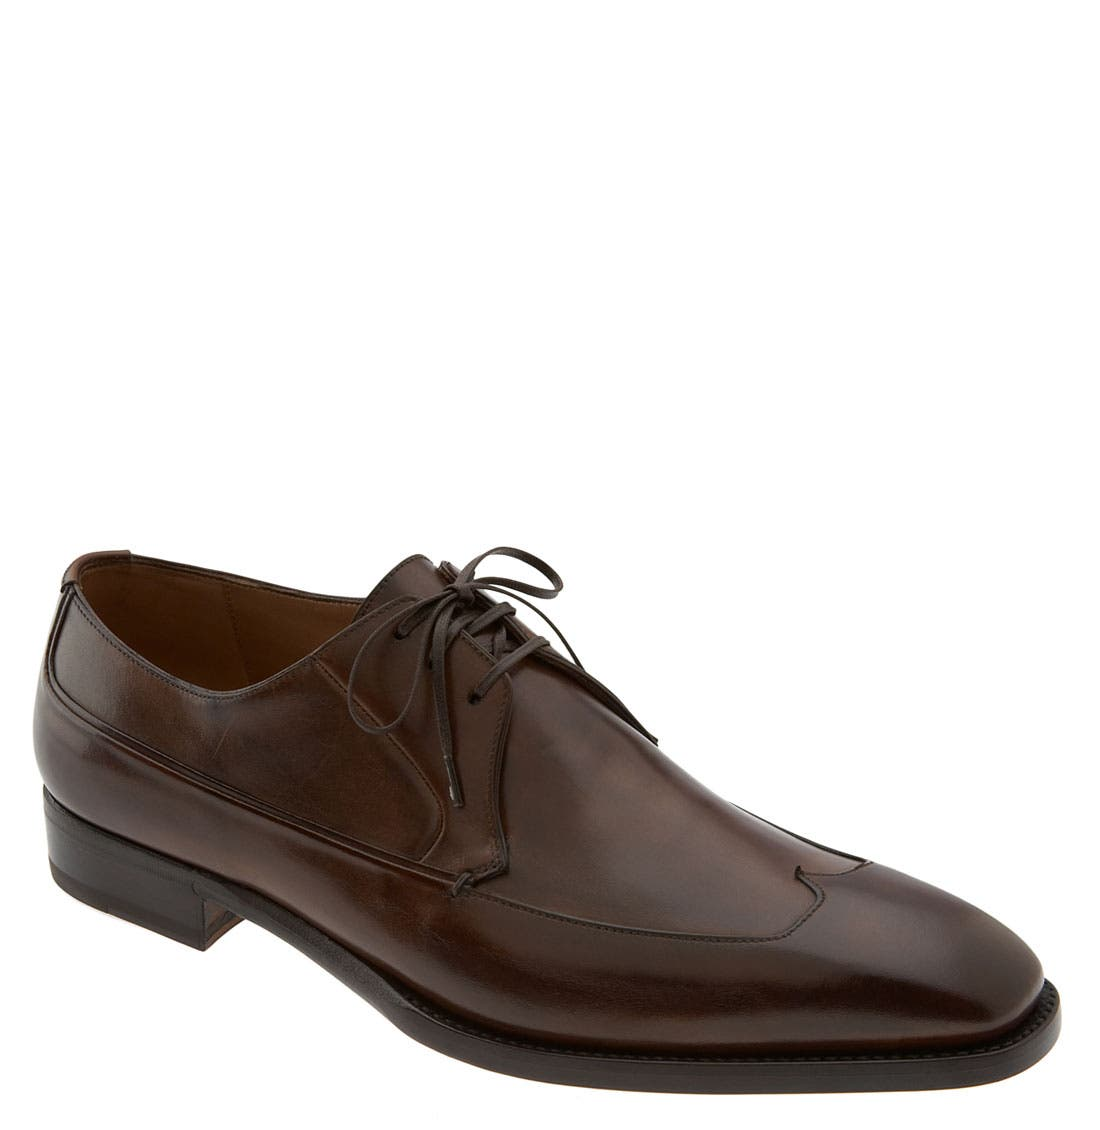 Alternate Image 1 Selected - Sassetti 'Treviso' Wing Tip Oxford